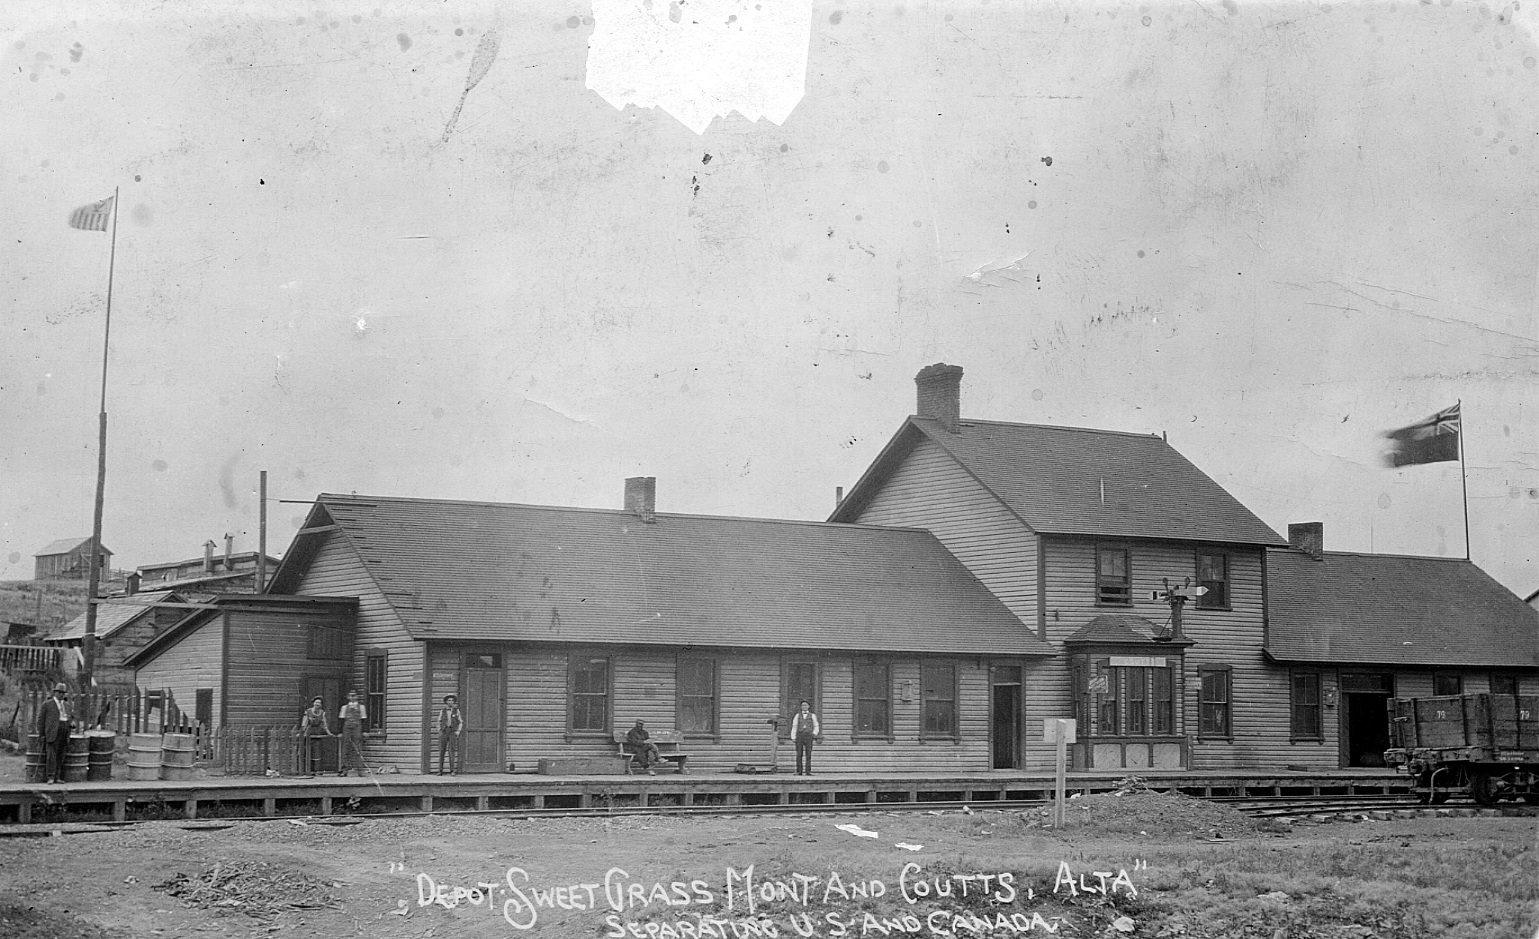 P19760237031jpg.jpg - P19760237031 – Ab. Railway & Irrigation Co. Station at Coutts / Sweetgrass - 1908 (Galt Museum